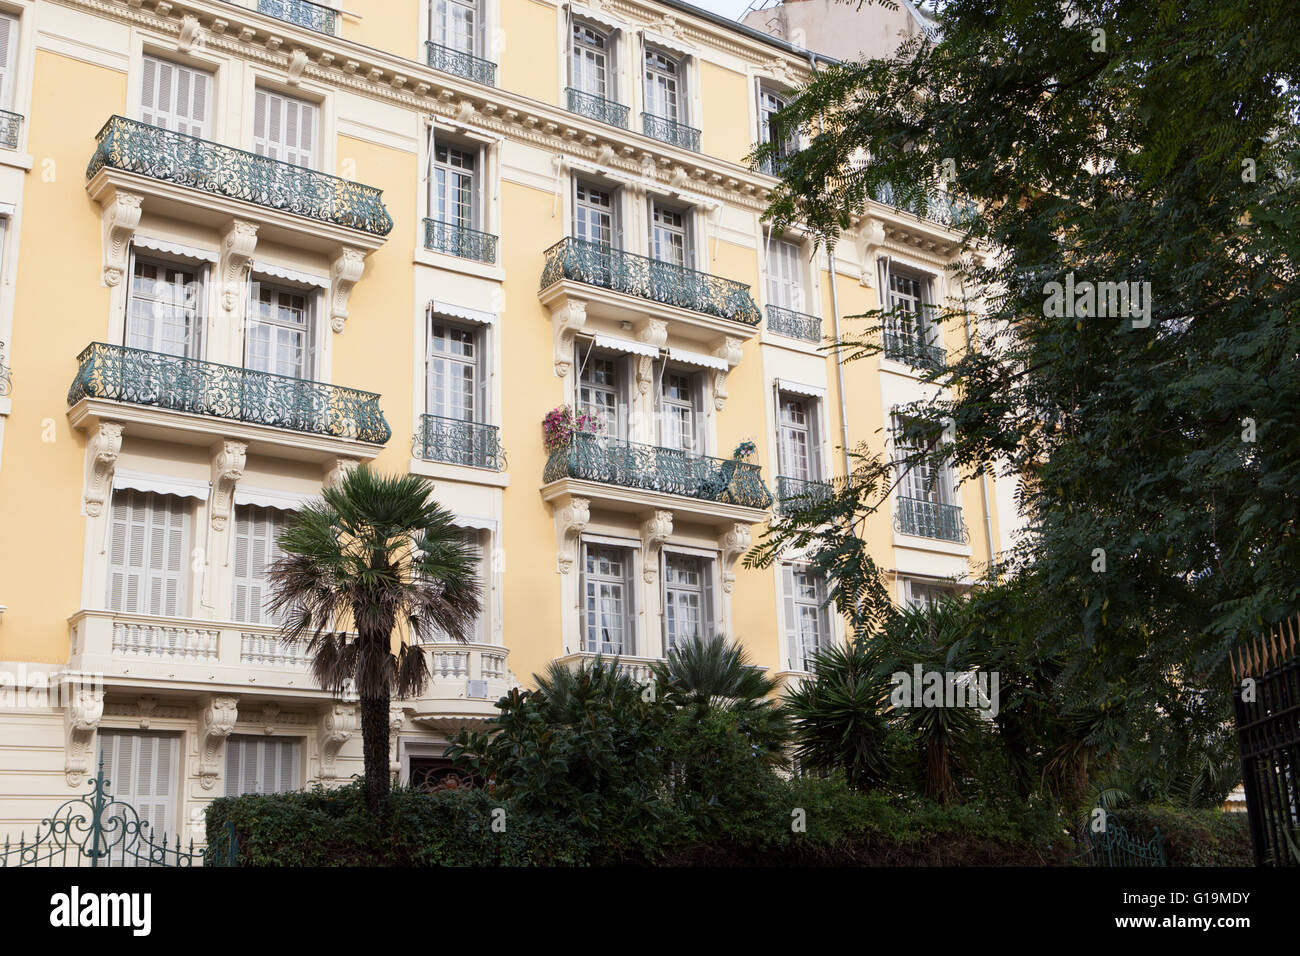 Apartments In Nice France Europe Stock Photo Alamy